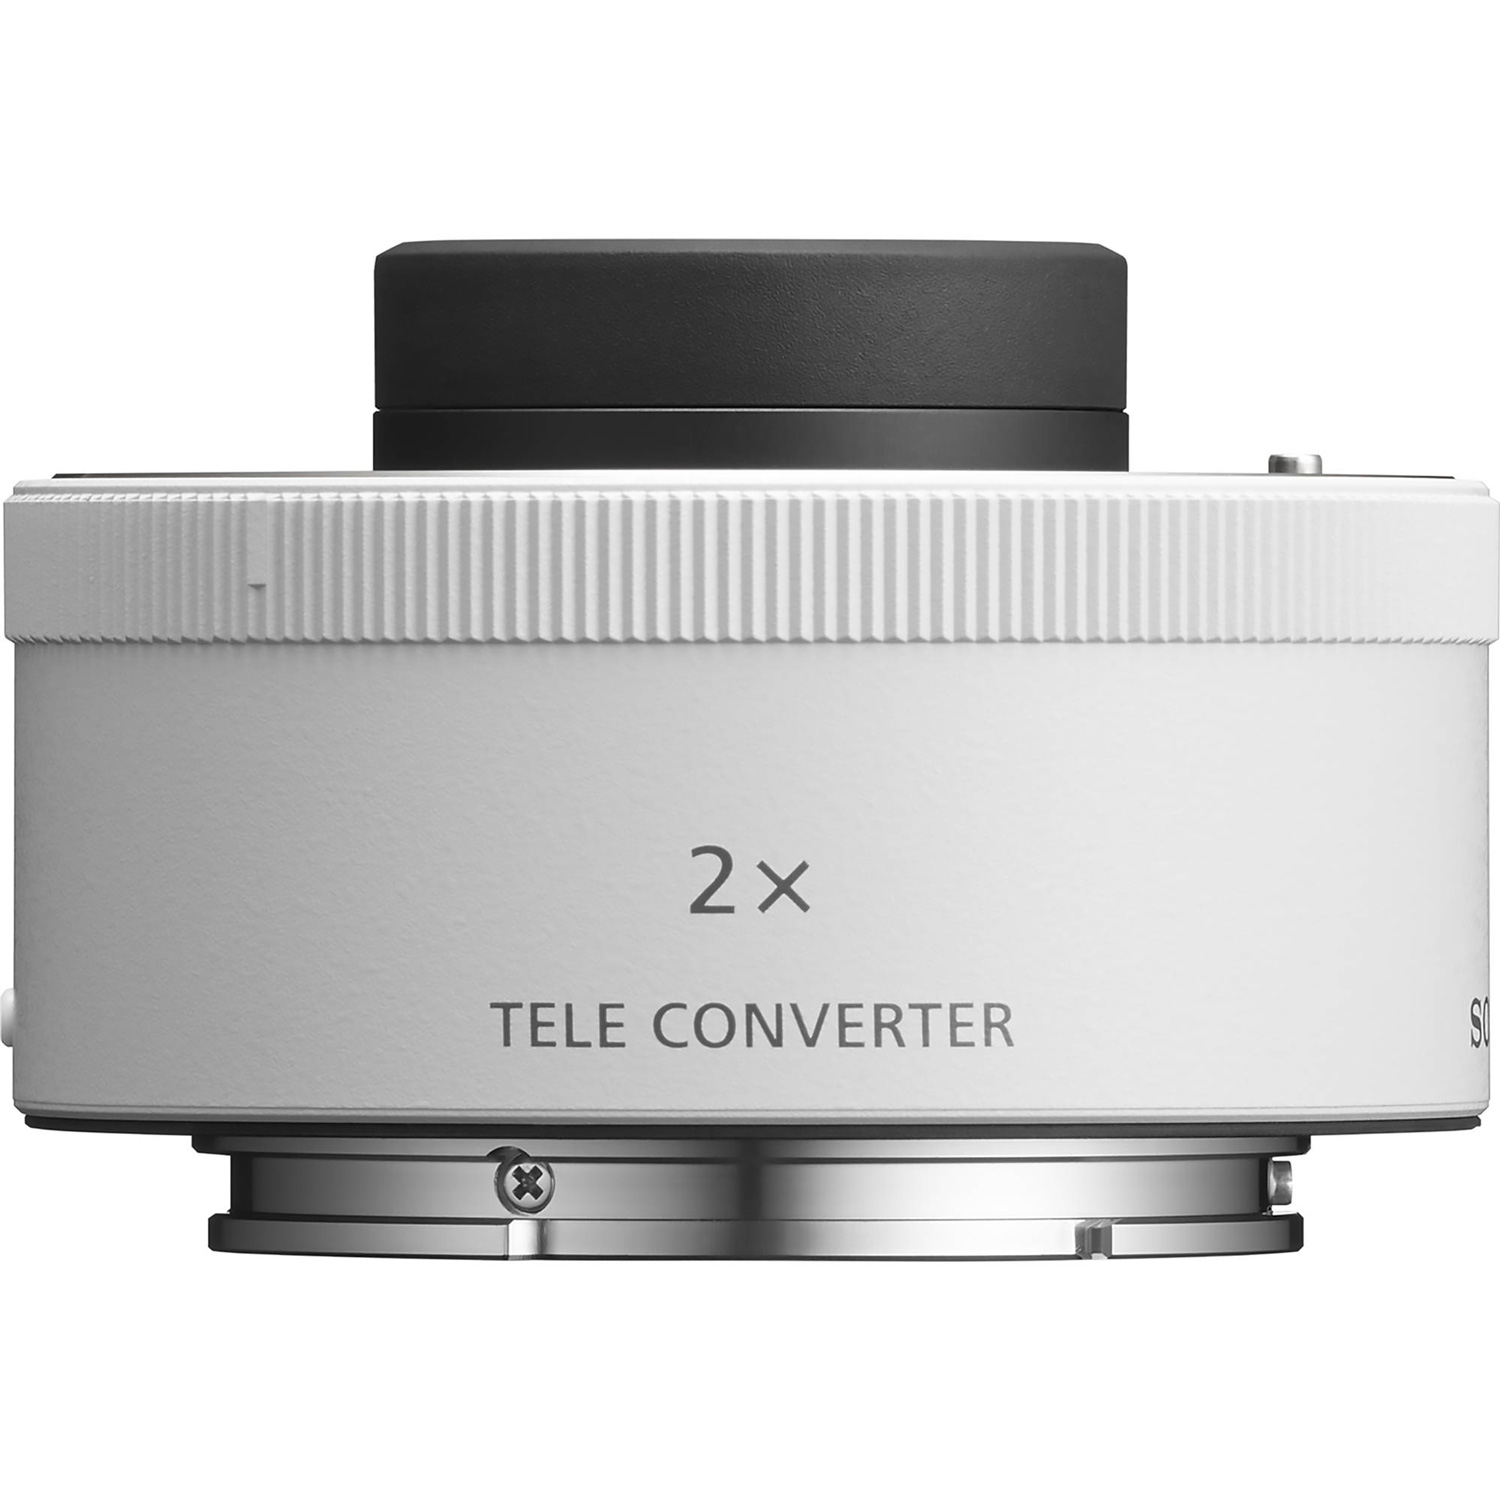 Click here for FE 2.0x Teleconverter prices